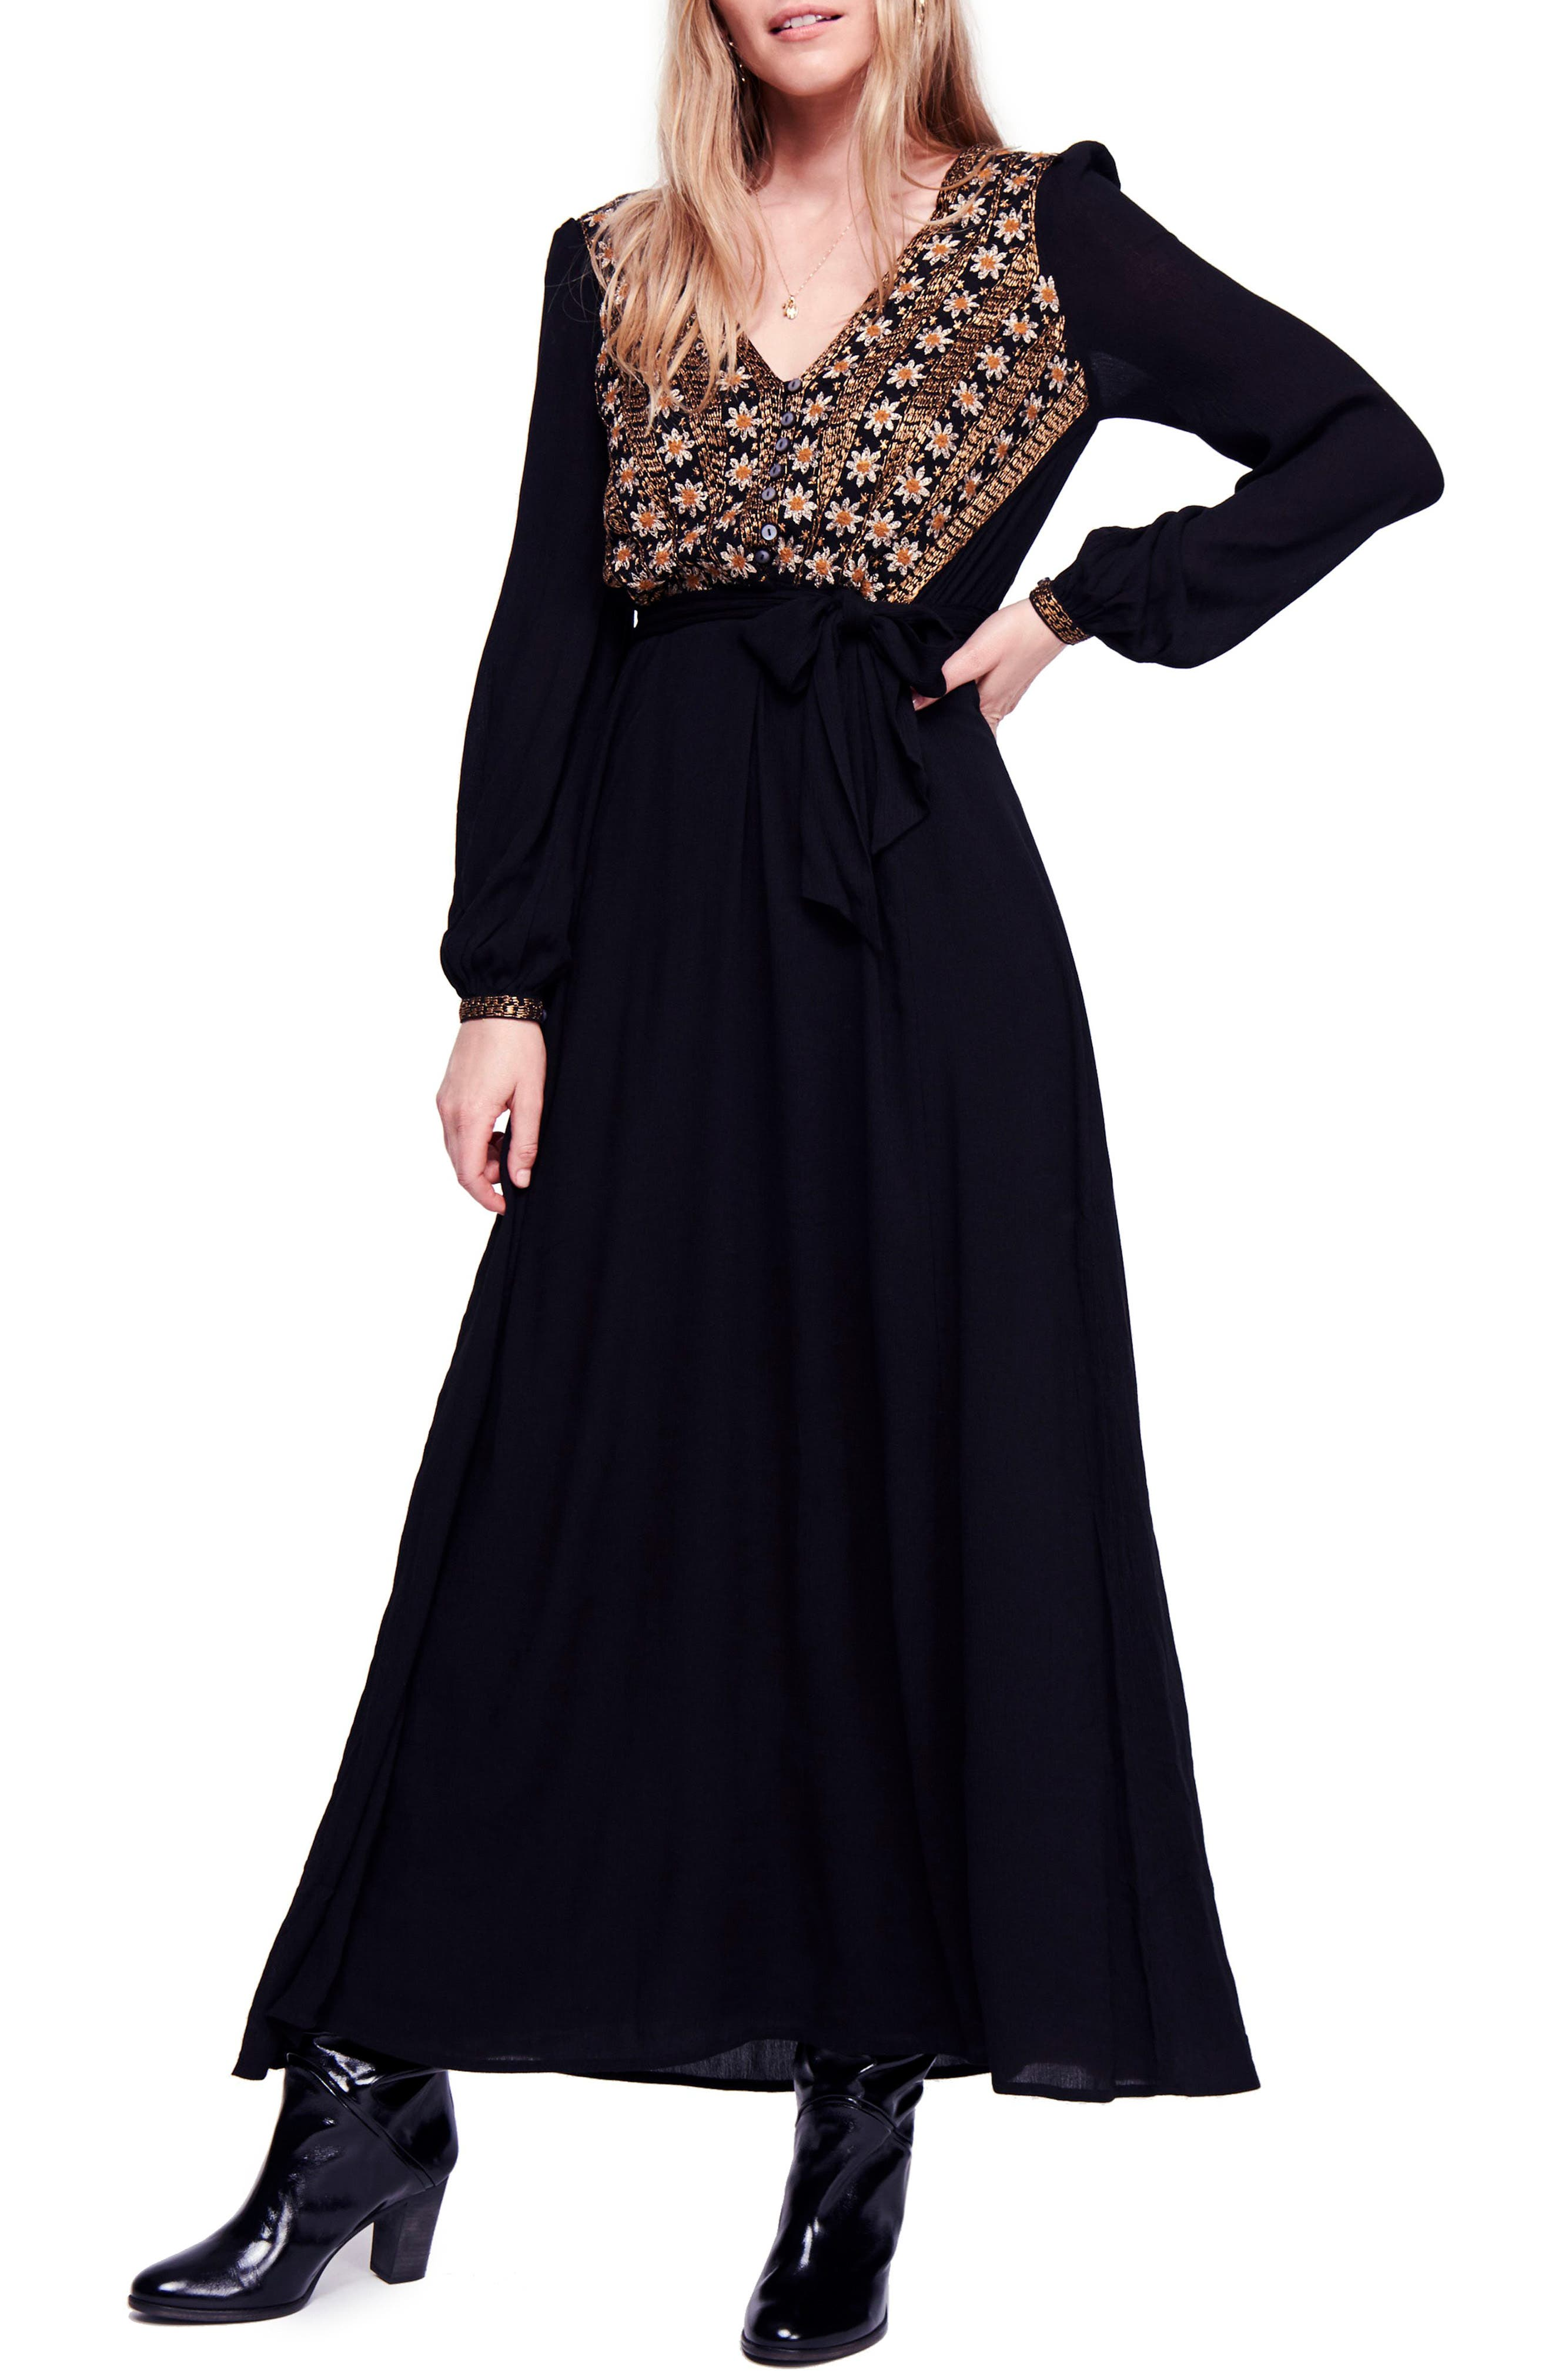 70s Dresses – Disco Dresses, Hippie Dresses, Wrap Dresses Womens Free People Hearts Desire Embroidered Maxi Dress Size X-Small - Black $198.00 AT vintagedancer.com